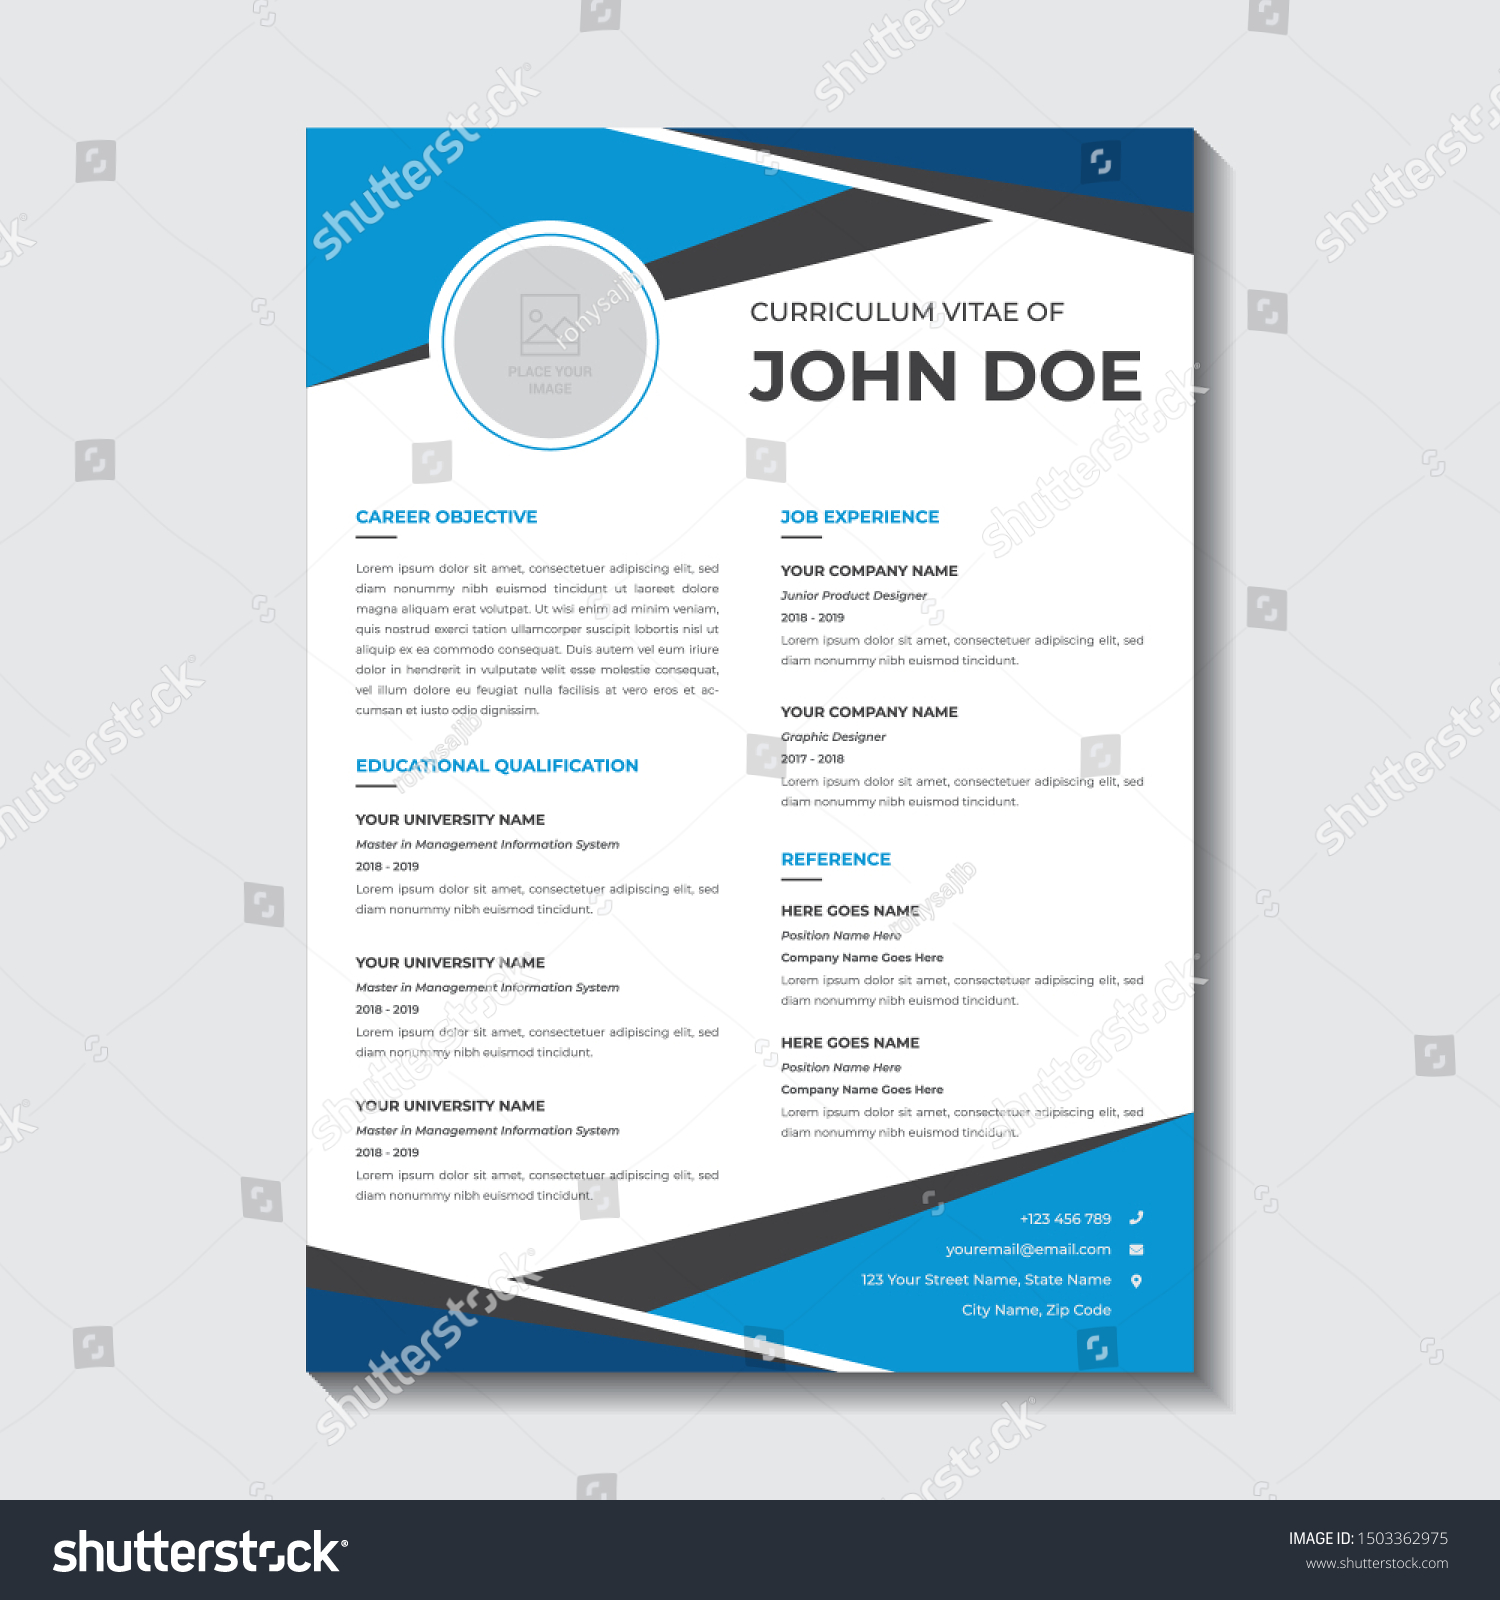 Single Page Resume Template from image.shutterstock.com